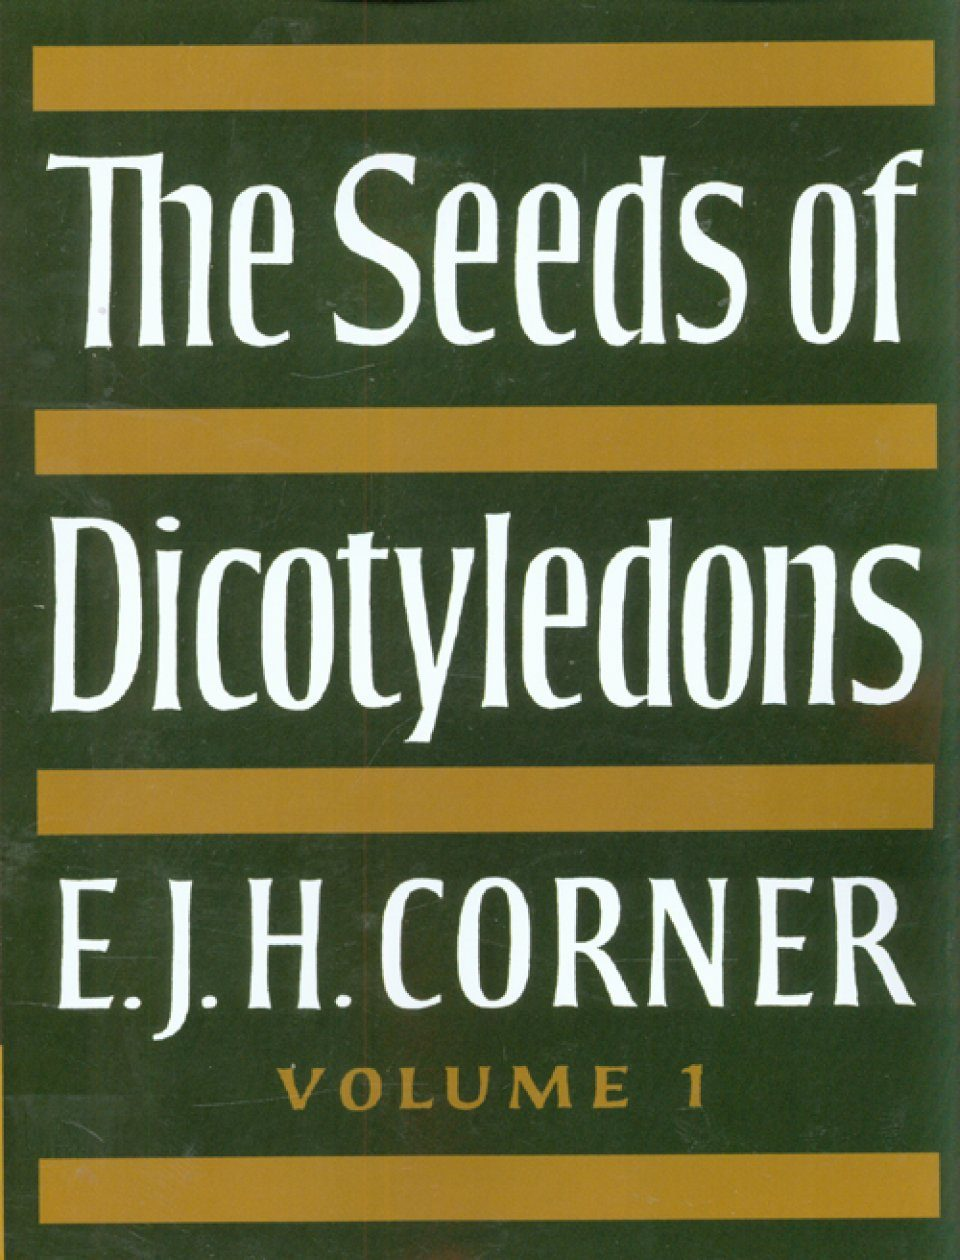 The Seeds of Dicotyledons: Volume 1